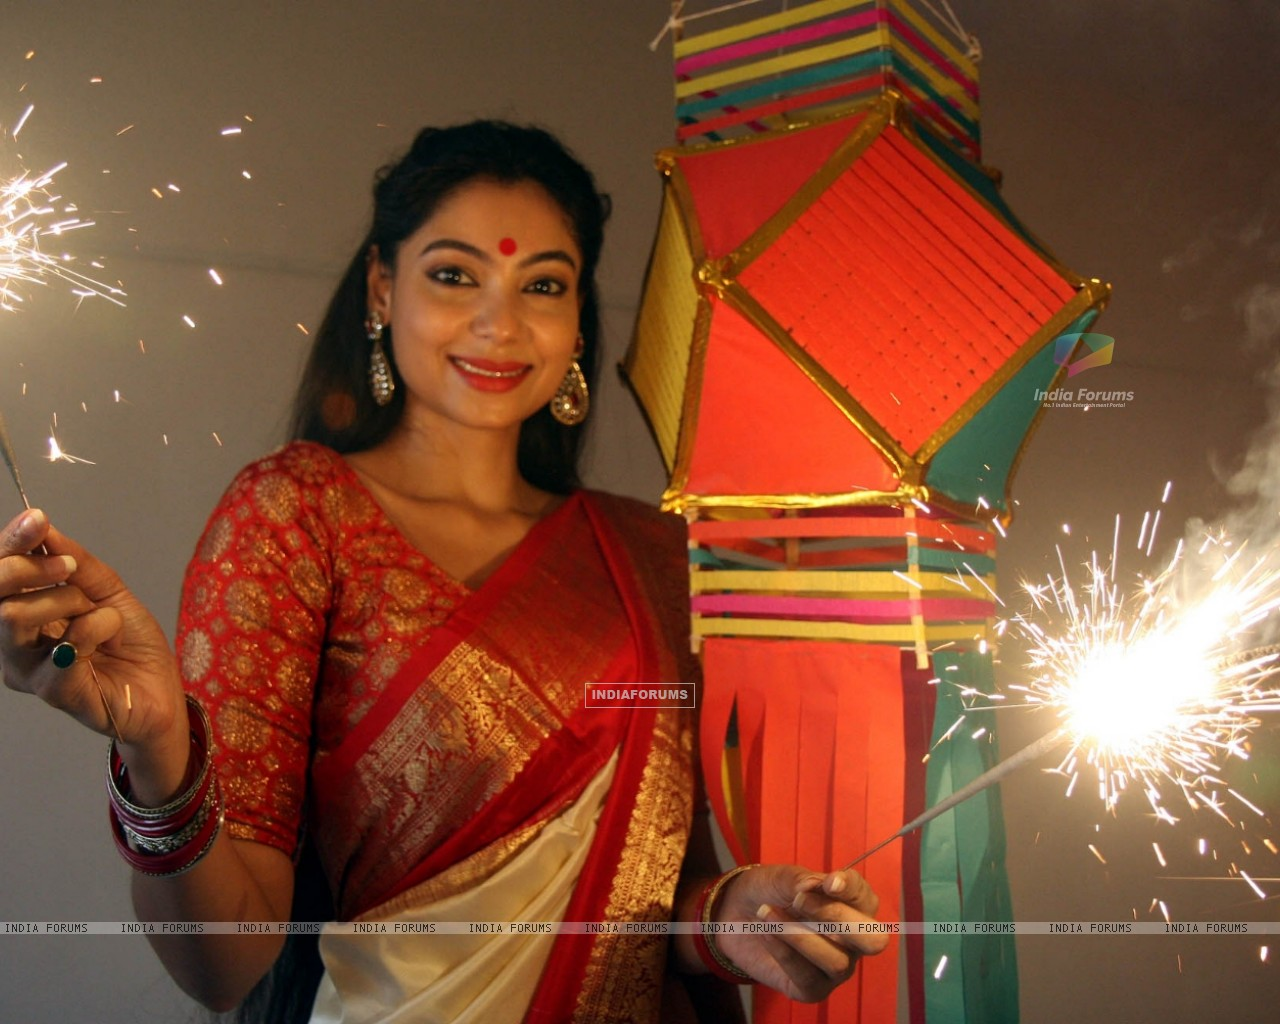 Anangsha Biswas special photo shoot of Diwali celebrations with fire crackers in Mumbai (239066) size:1280x1024